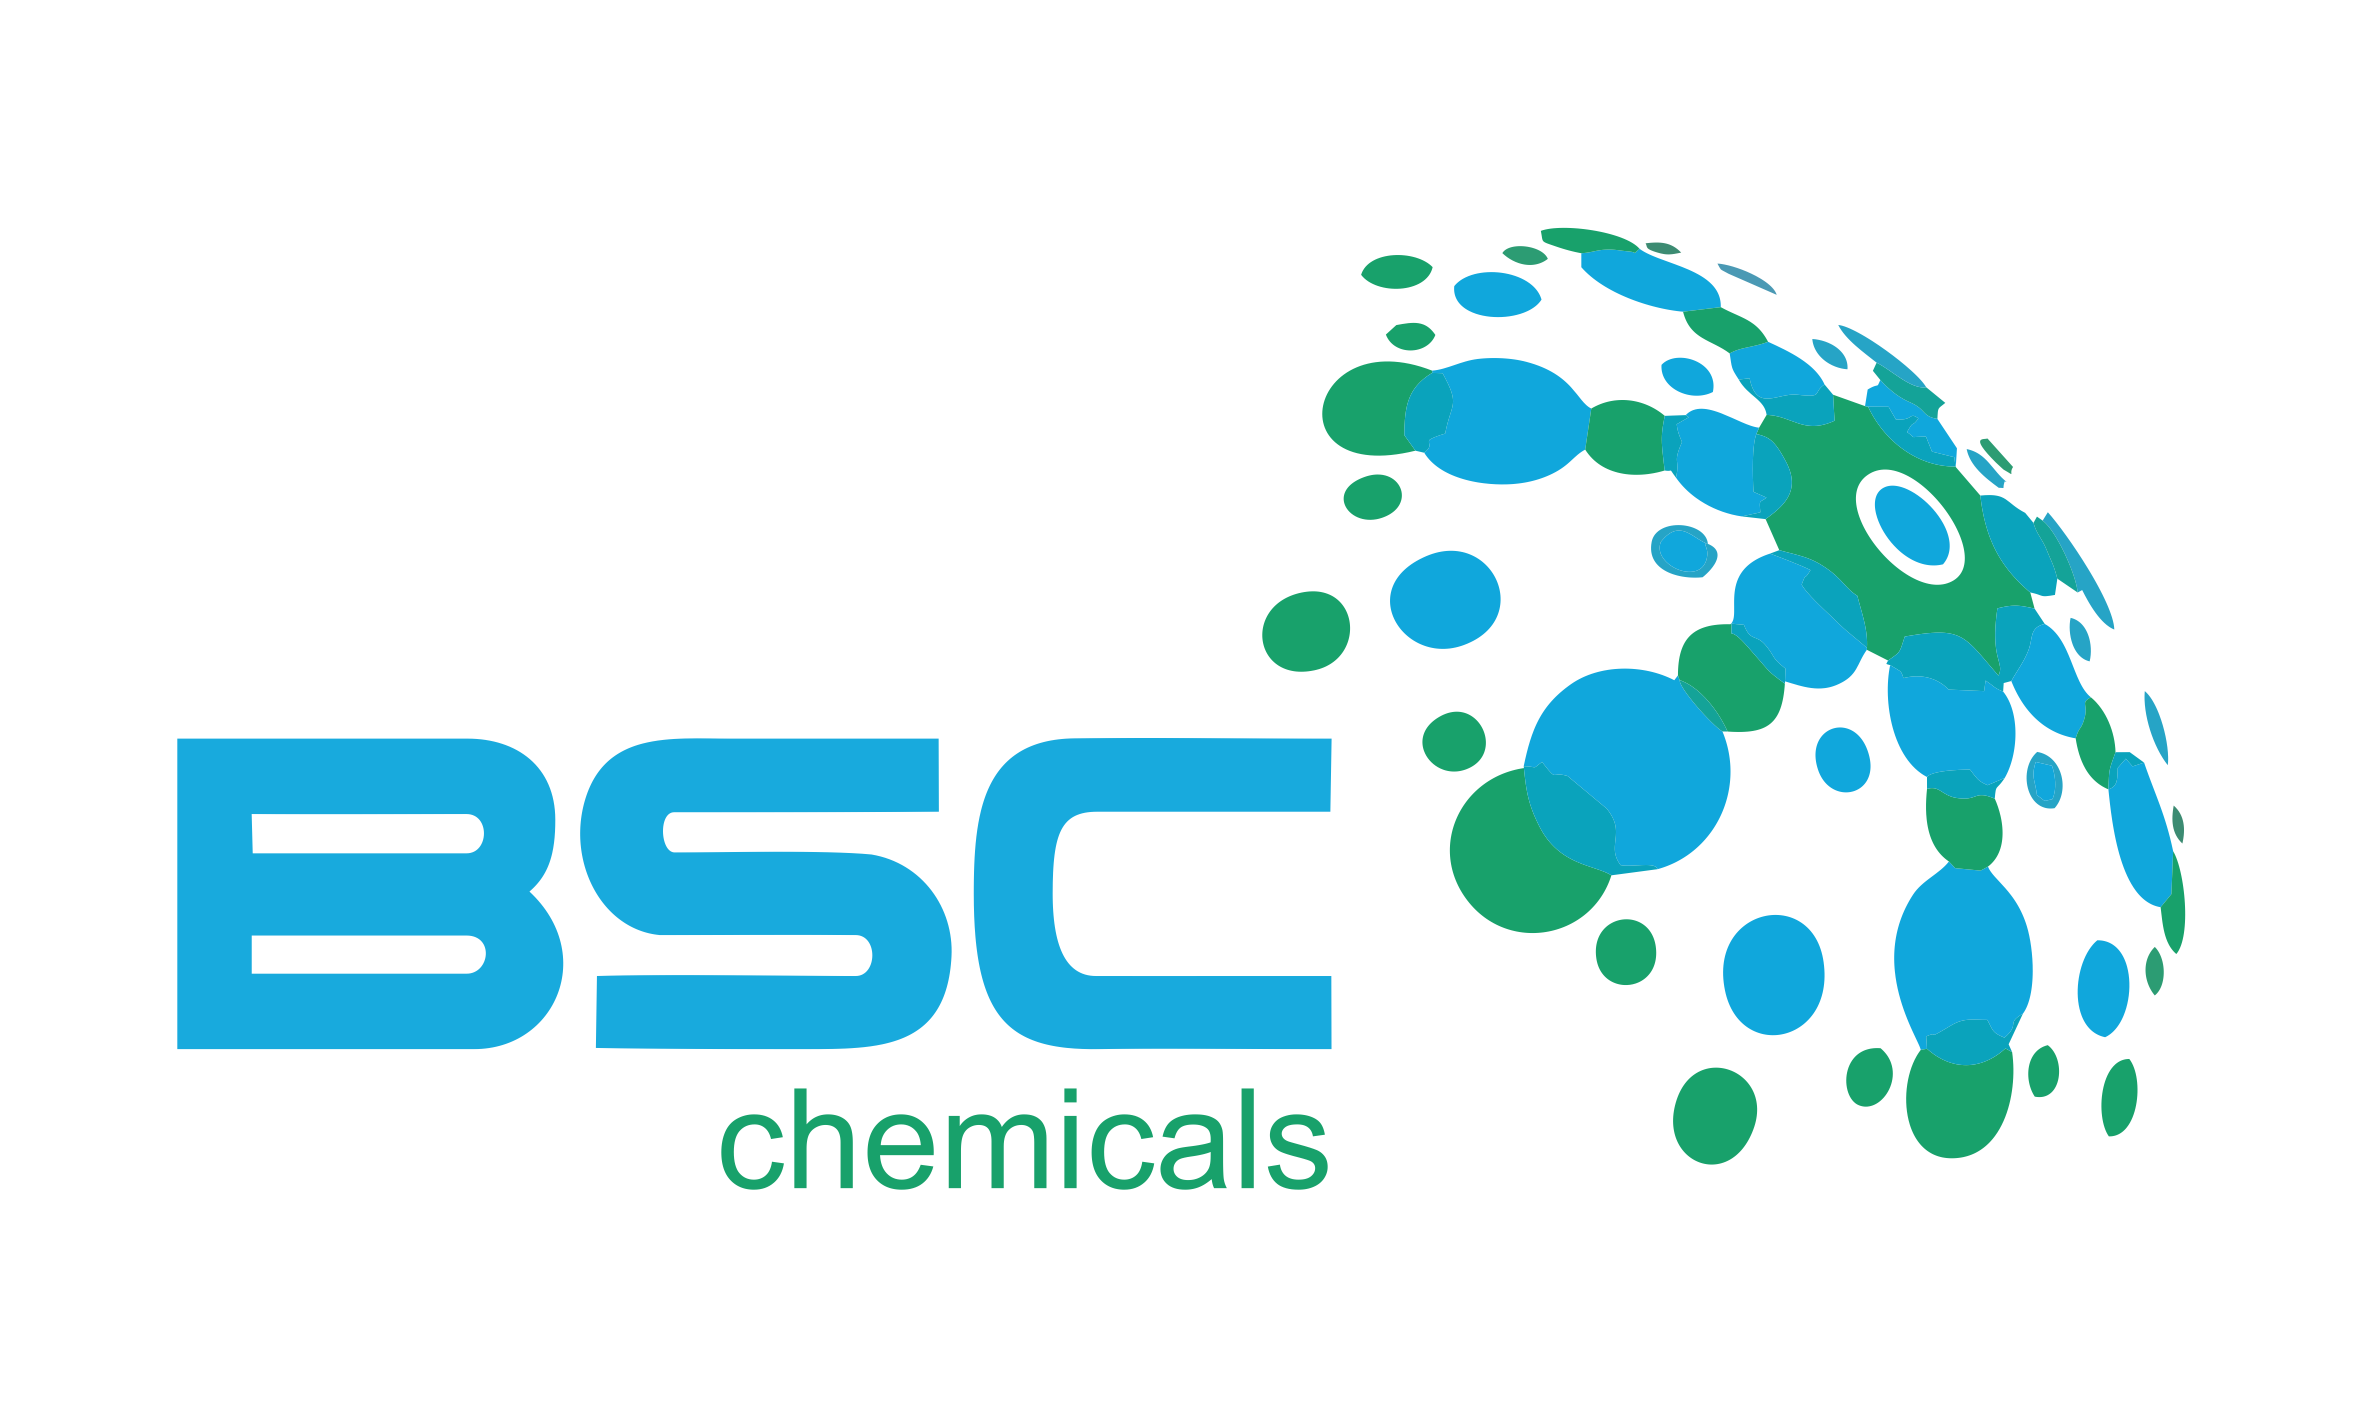 7 BSC chemical